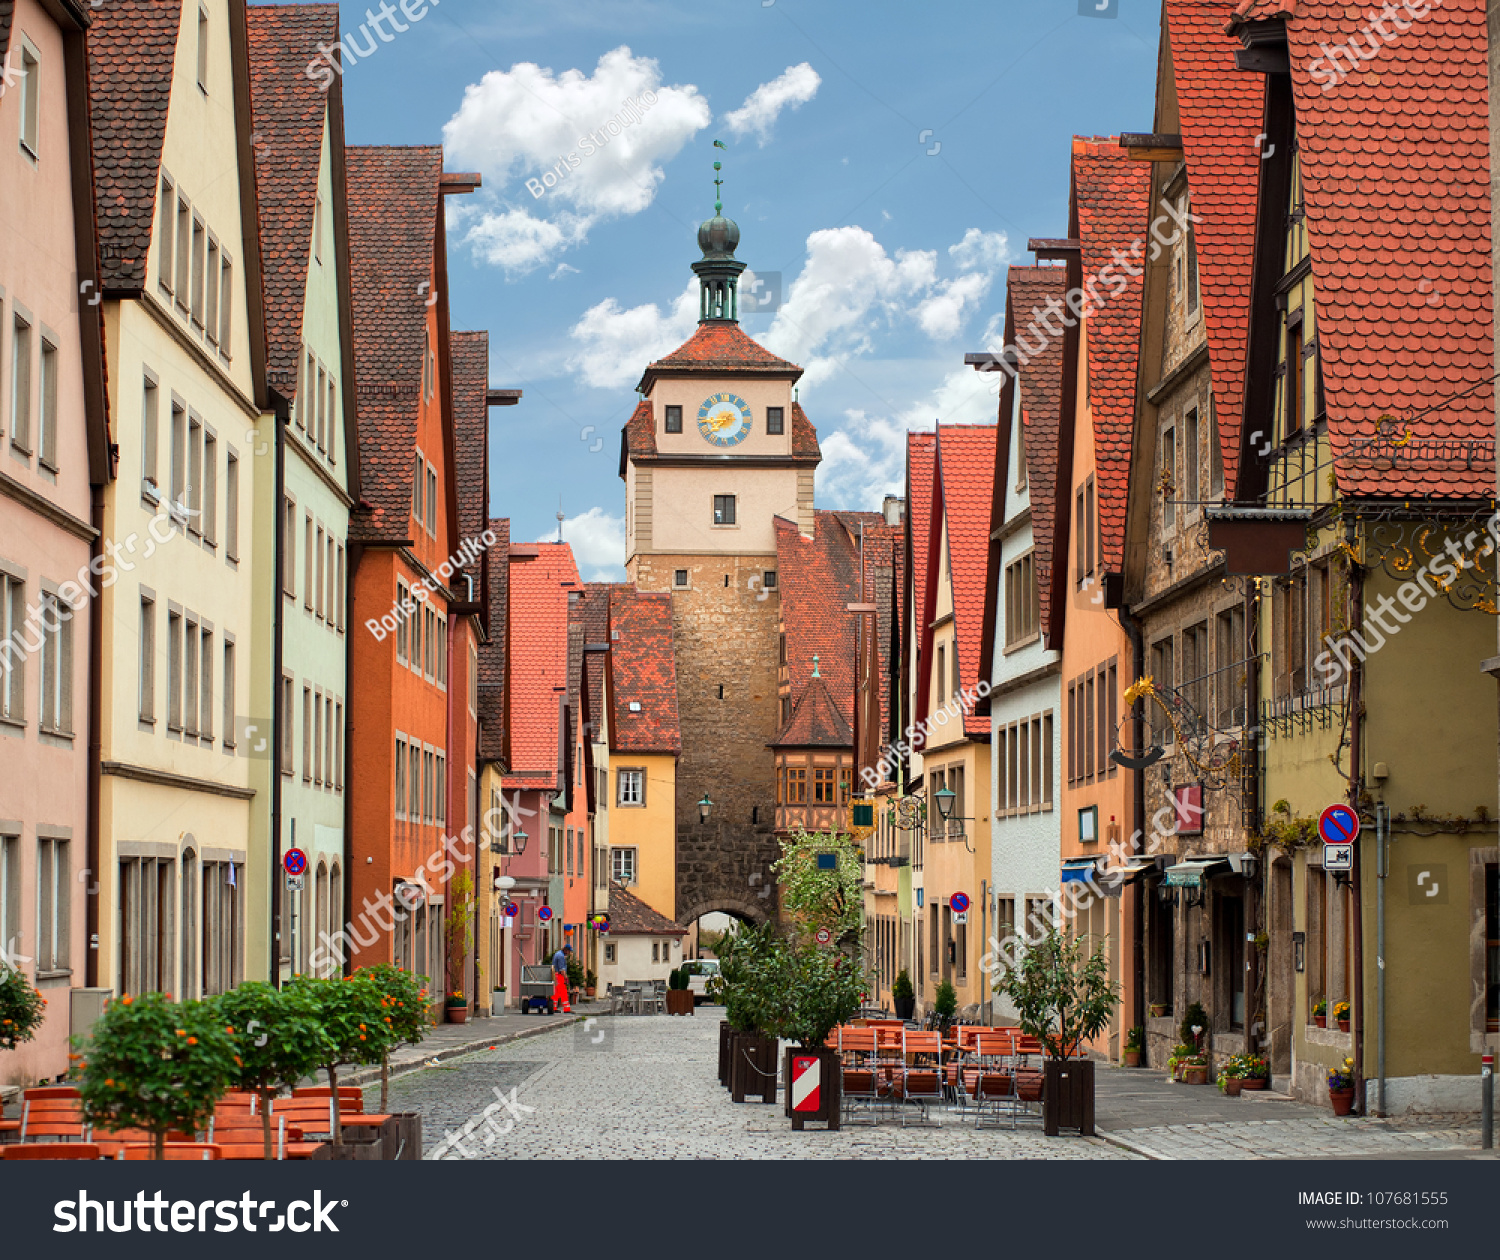 rothenburg ob der tauber old medieval stock photo 107681555 shutterstock. Black Bedroom Furniture Sets. Home Design Ideas